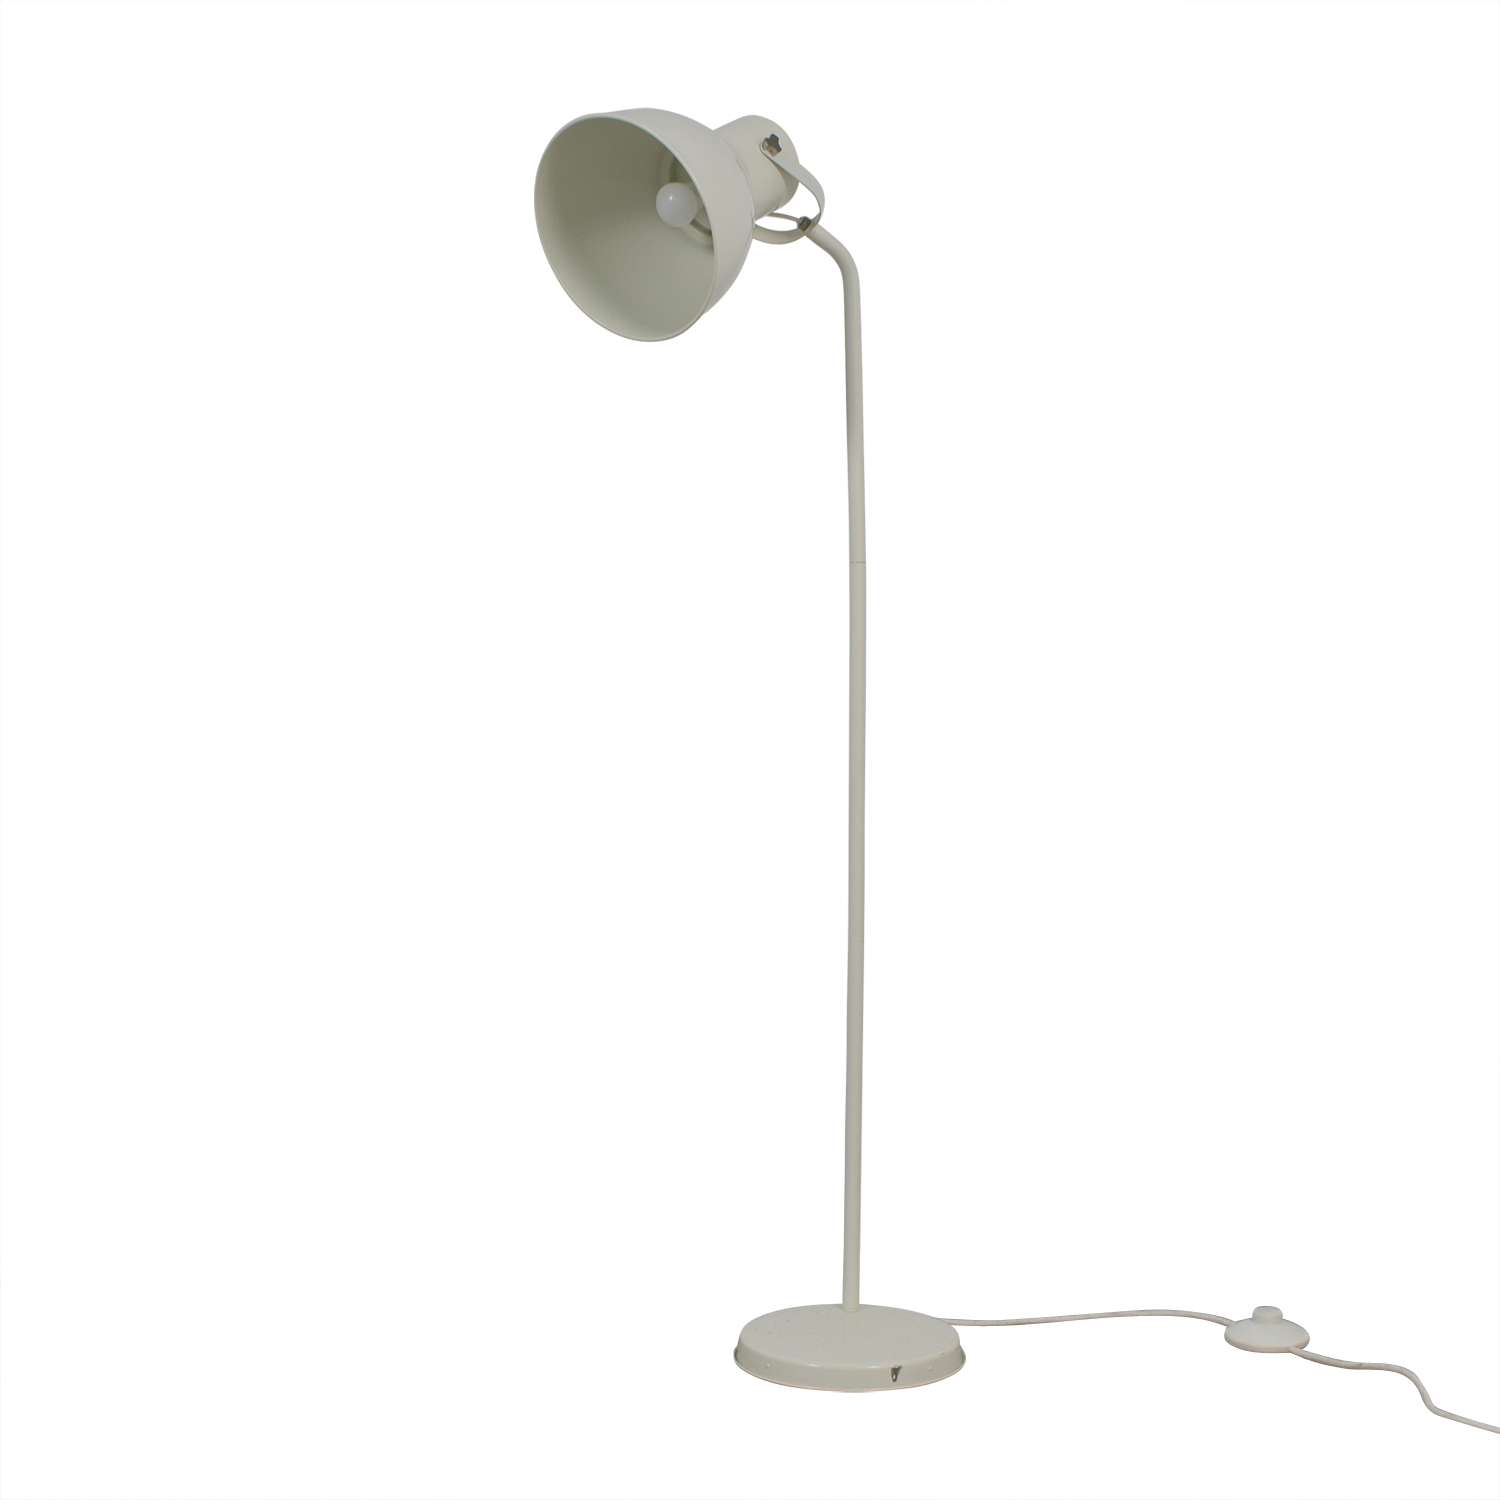 60 Off Ikea Ikea Hektar Floor Lamp Decor